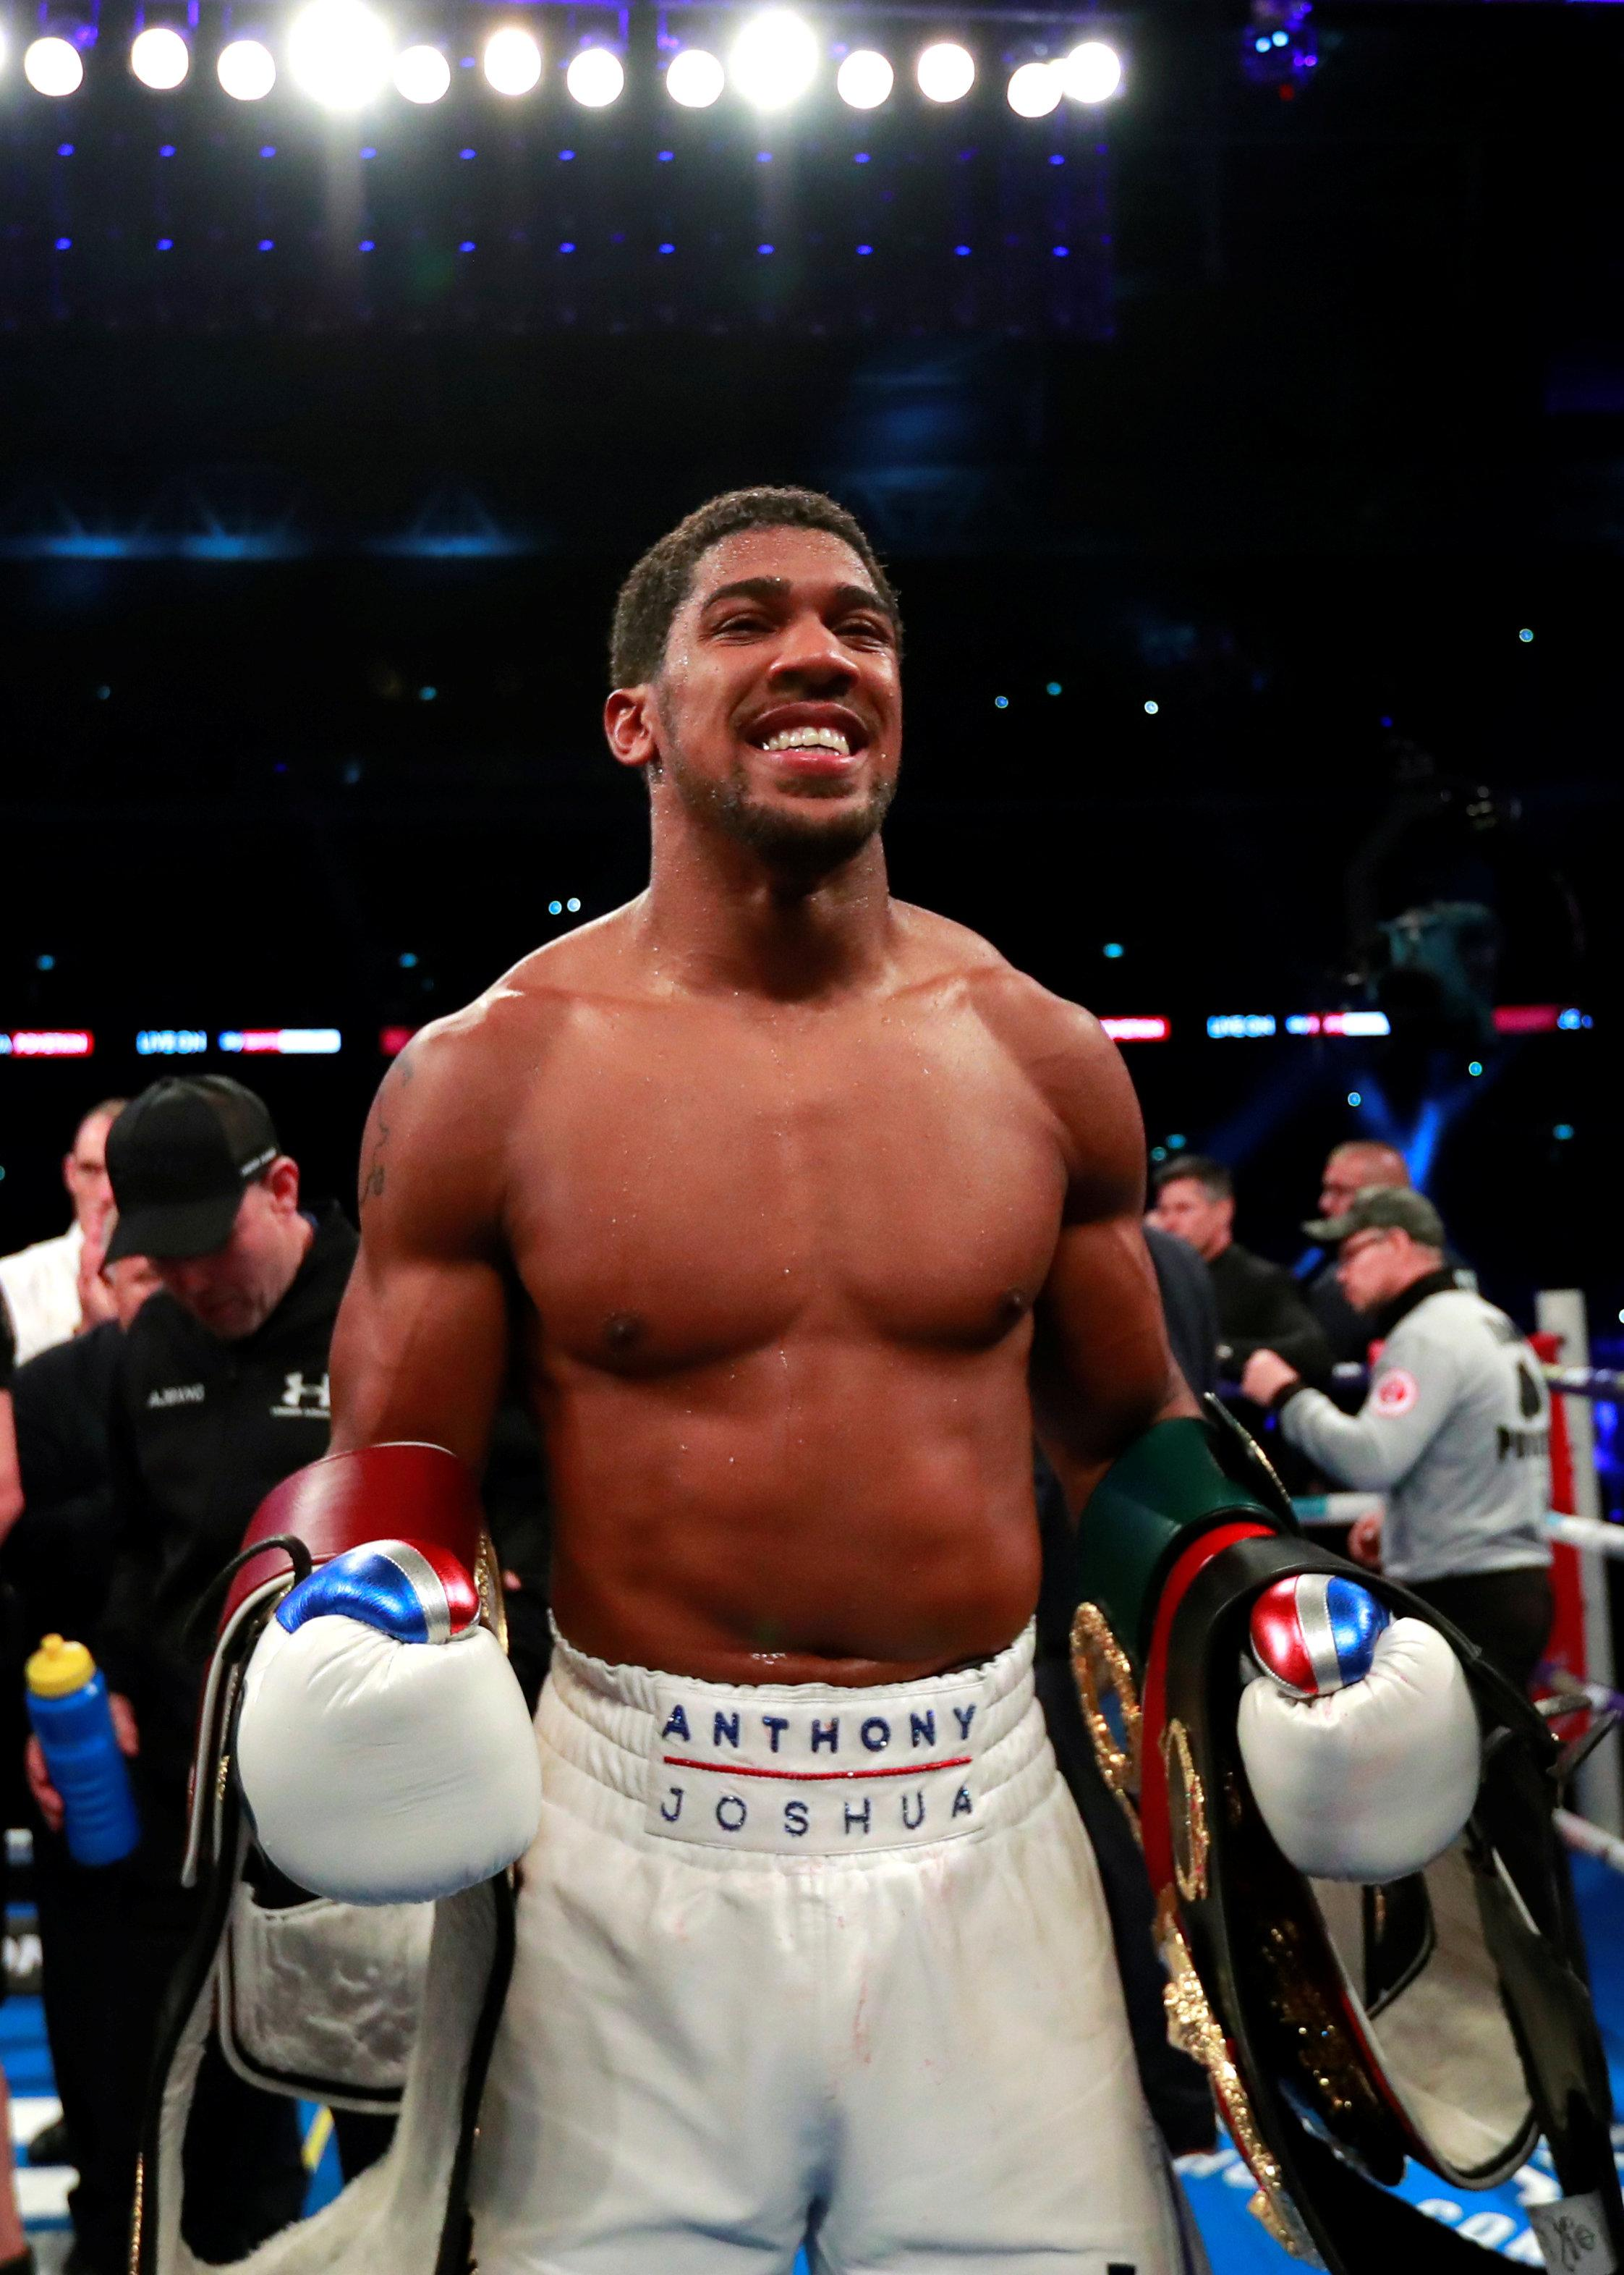 Anthony Joshua could take on Wilder next April if he beats Fury